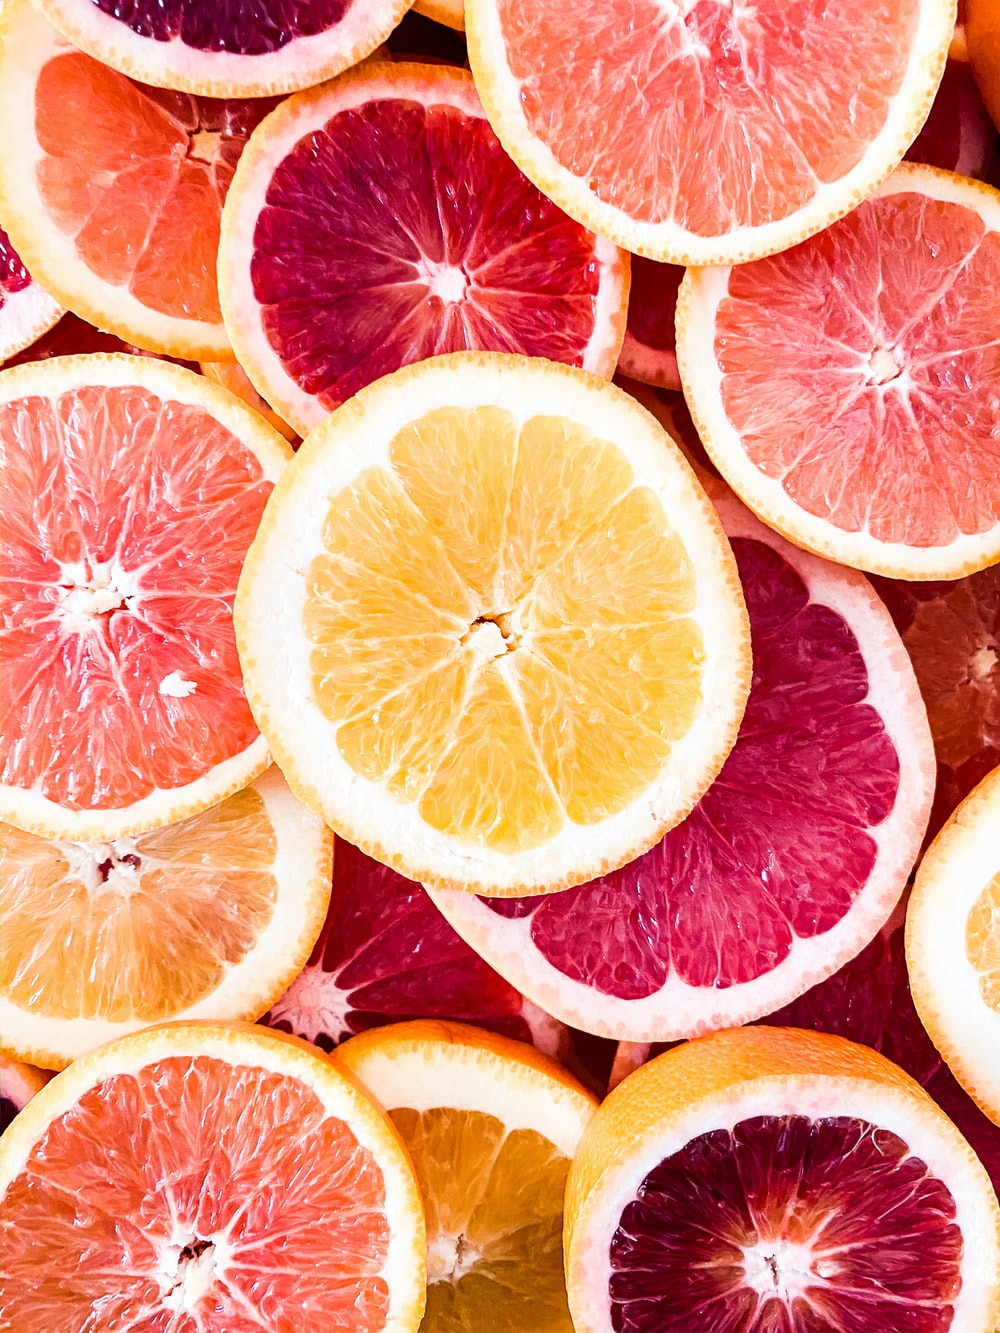 100 Fruits Pictures Download Free Images On Unsplash